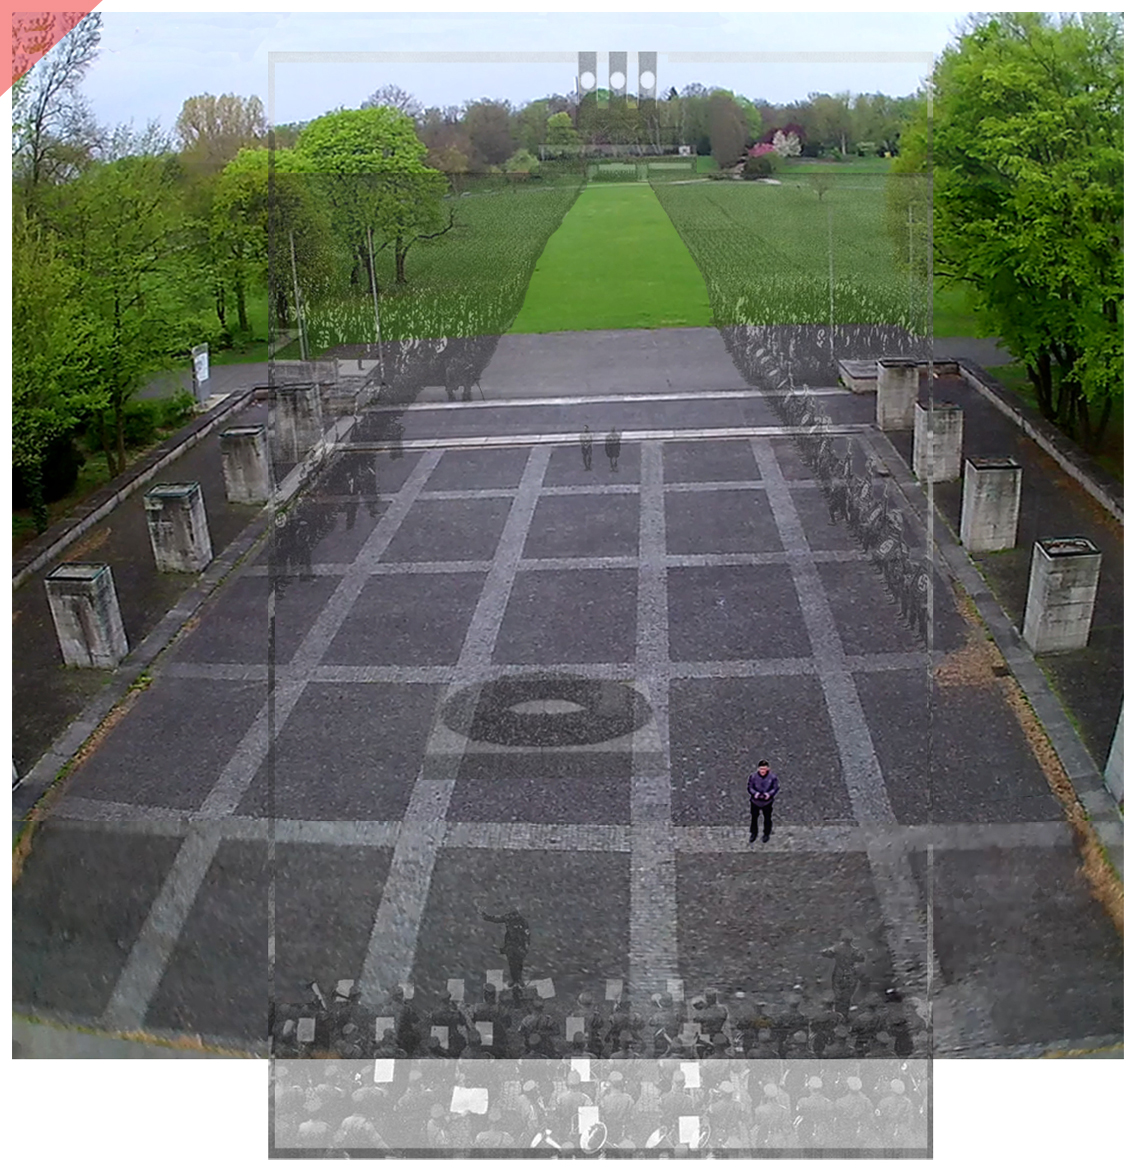 Nuremberg Party Rally Grounds Luitpold arena Röhm 1933 Hall of honour Banner roof bird view Now Then